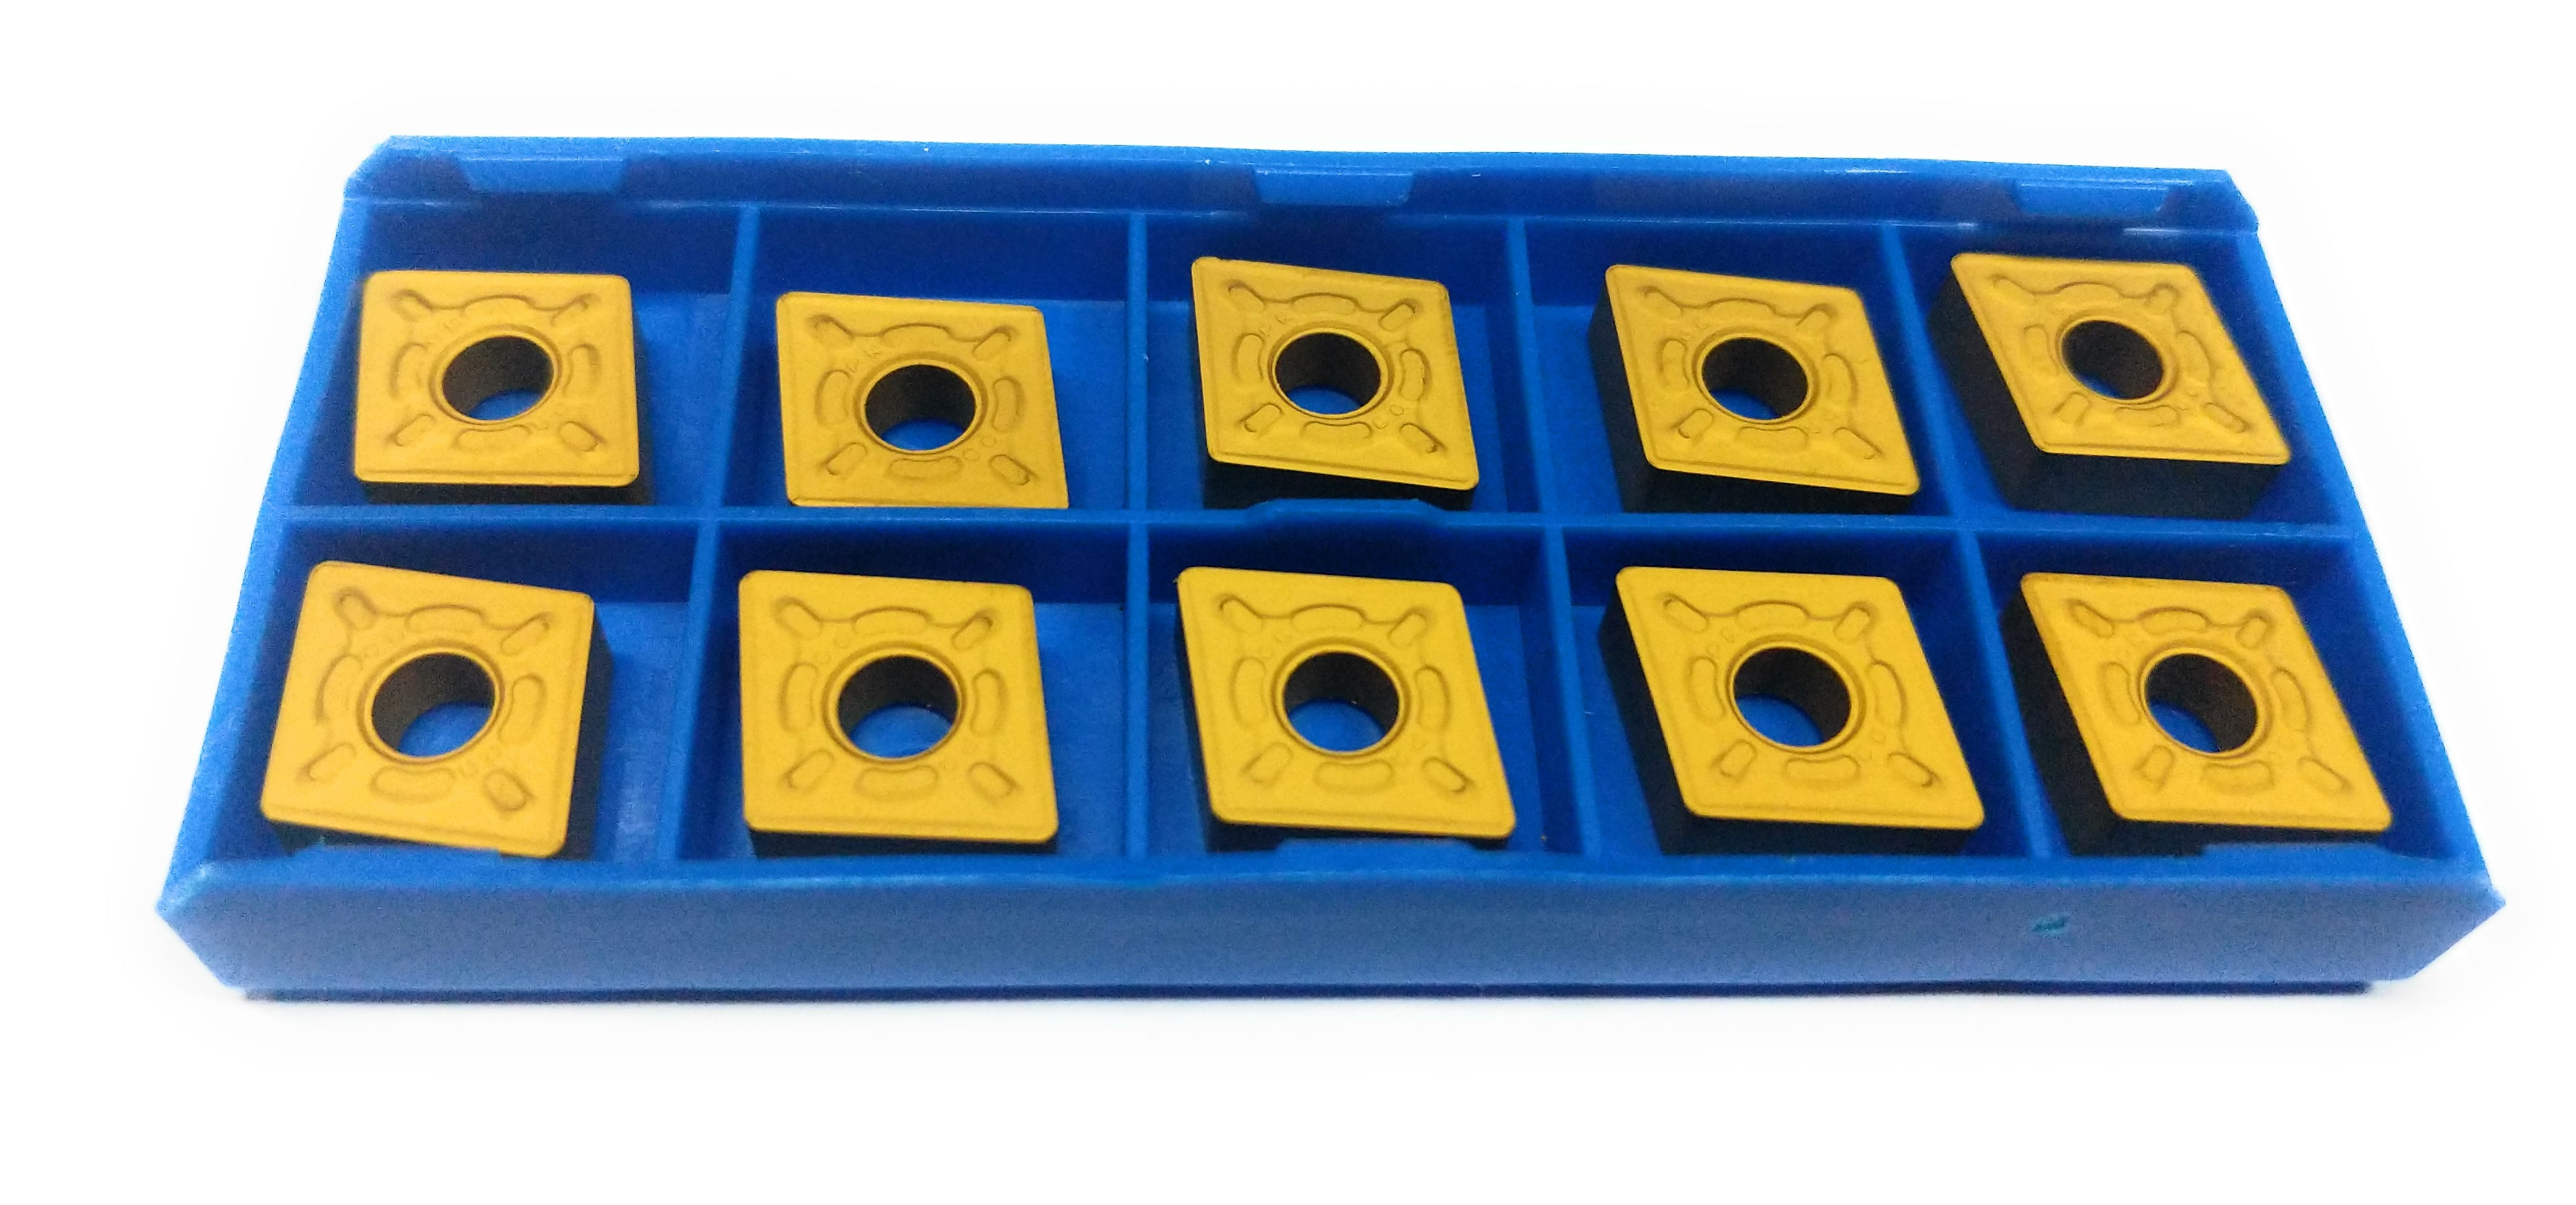 10 pcs RISHET TOOLS 20217 CNMG 432-PM 120408-PM Grade MT4030 CVD Coated High Performance Carbide Inserts for Steel